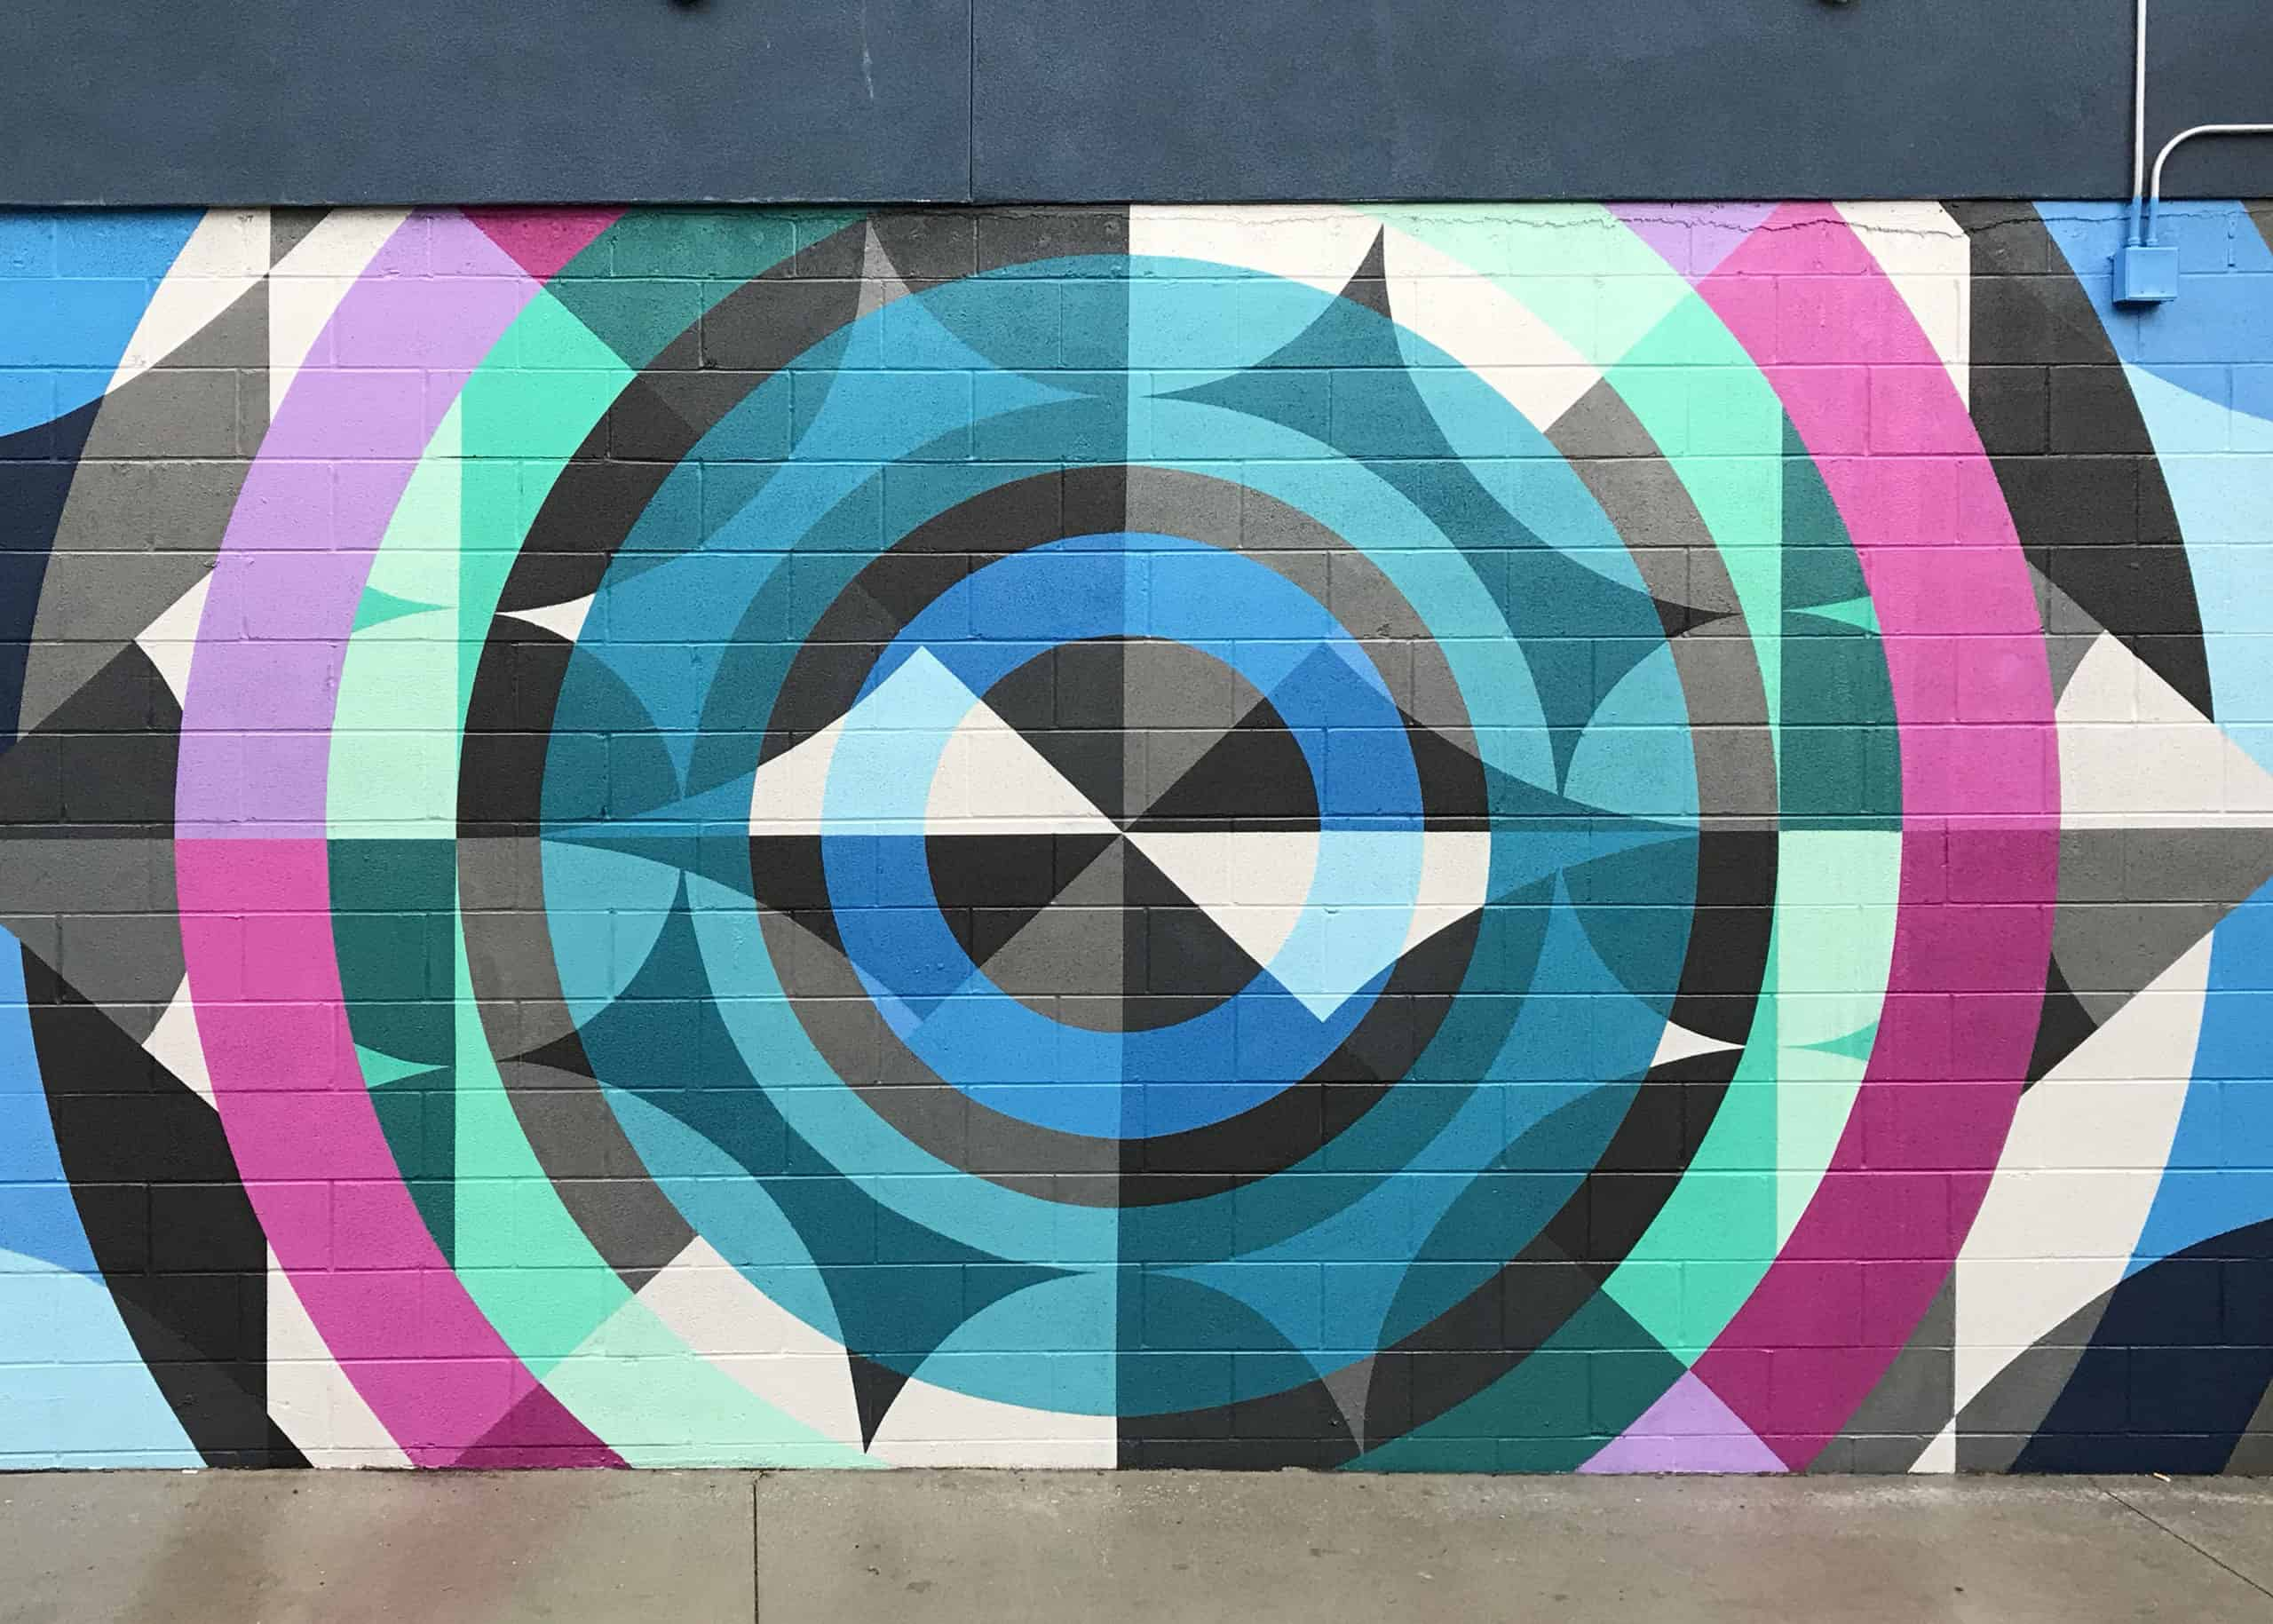 The Crush Walls Mural Festival Denver Colorado, Public Art, Street Art, 2018. Jason T. Graves